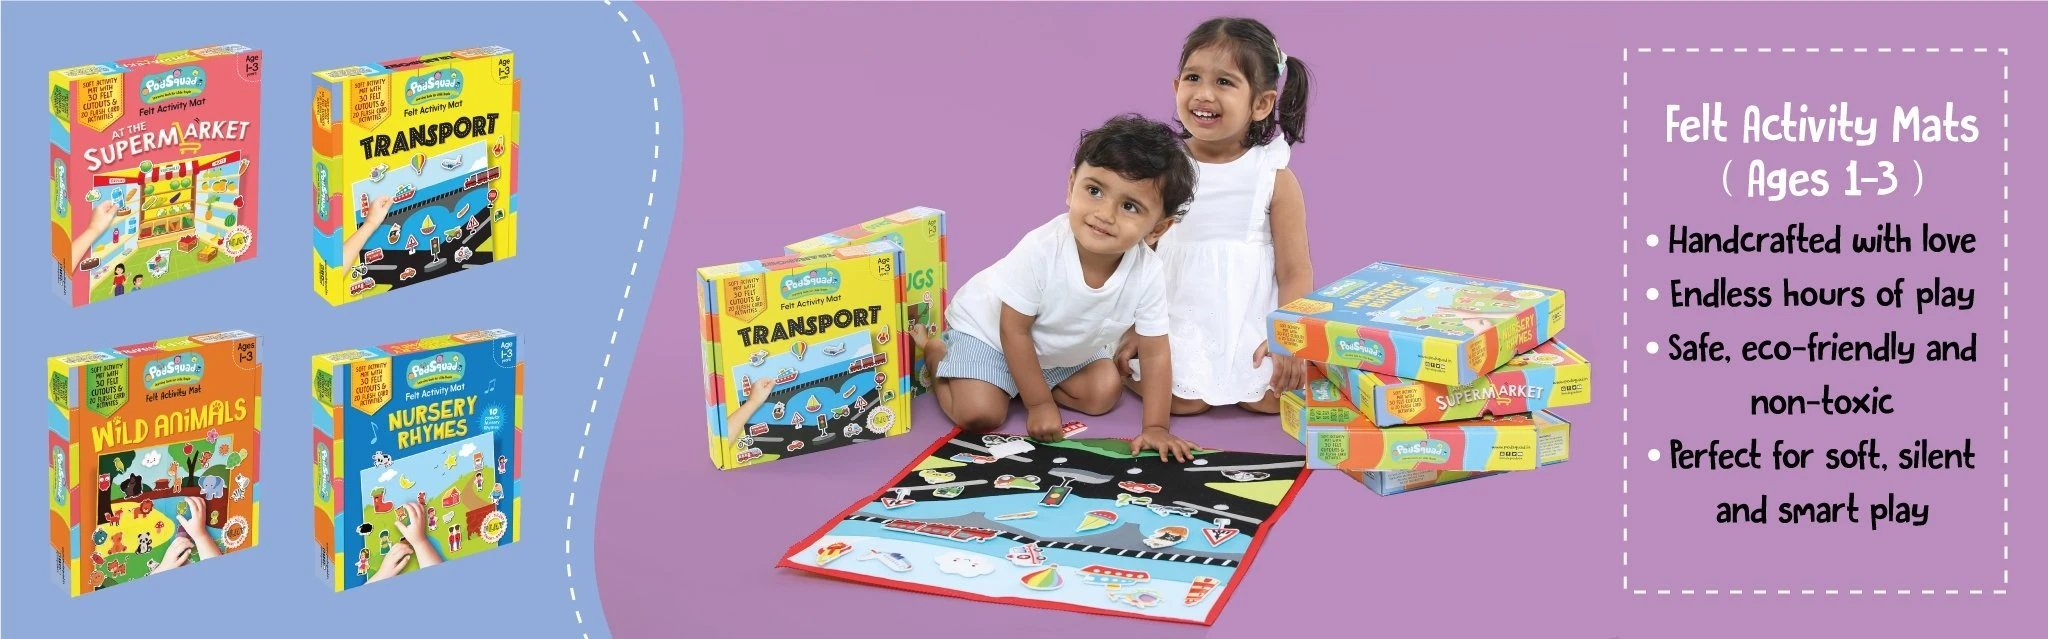 Fun learning programme in a box. Educational activity boxes. Kids.